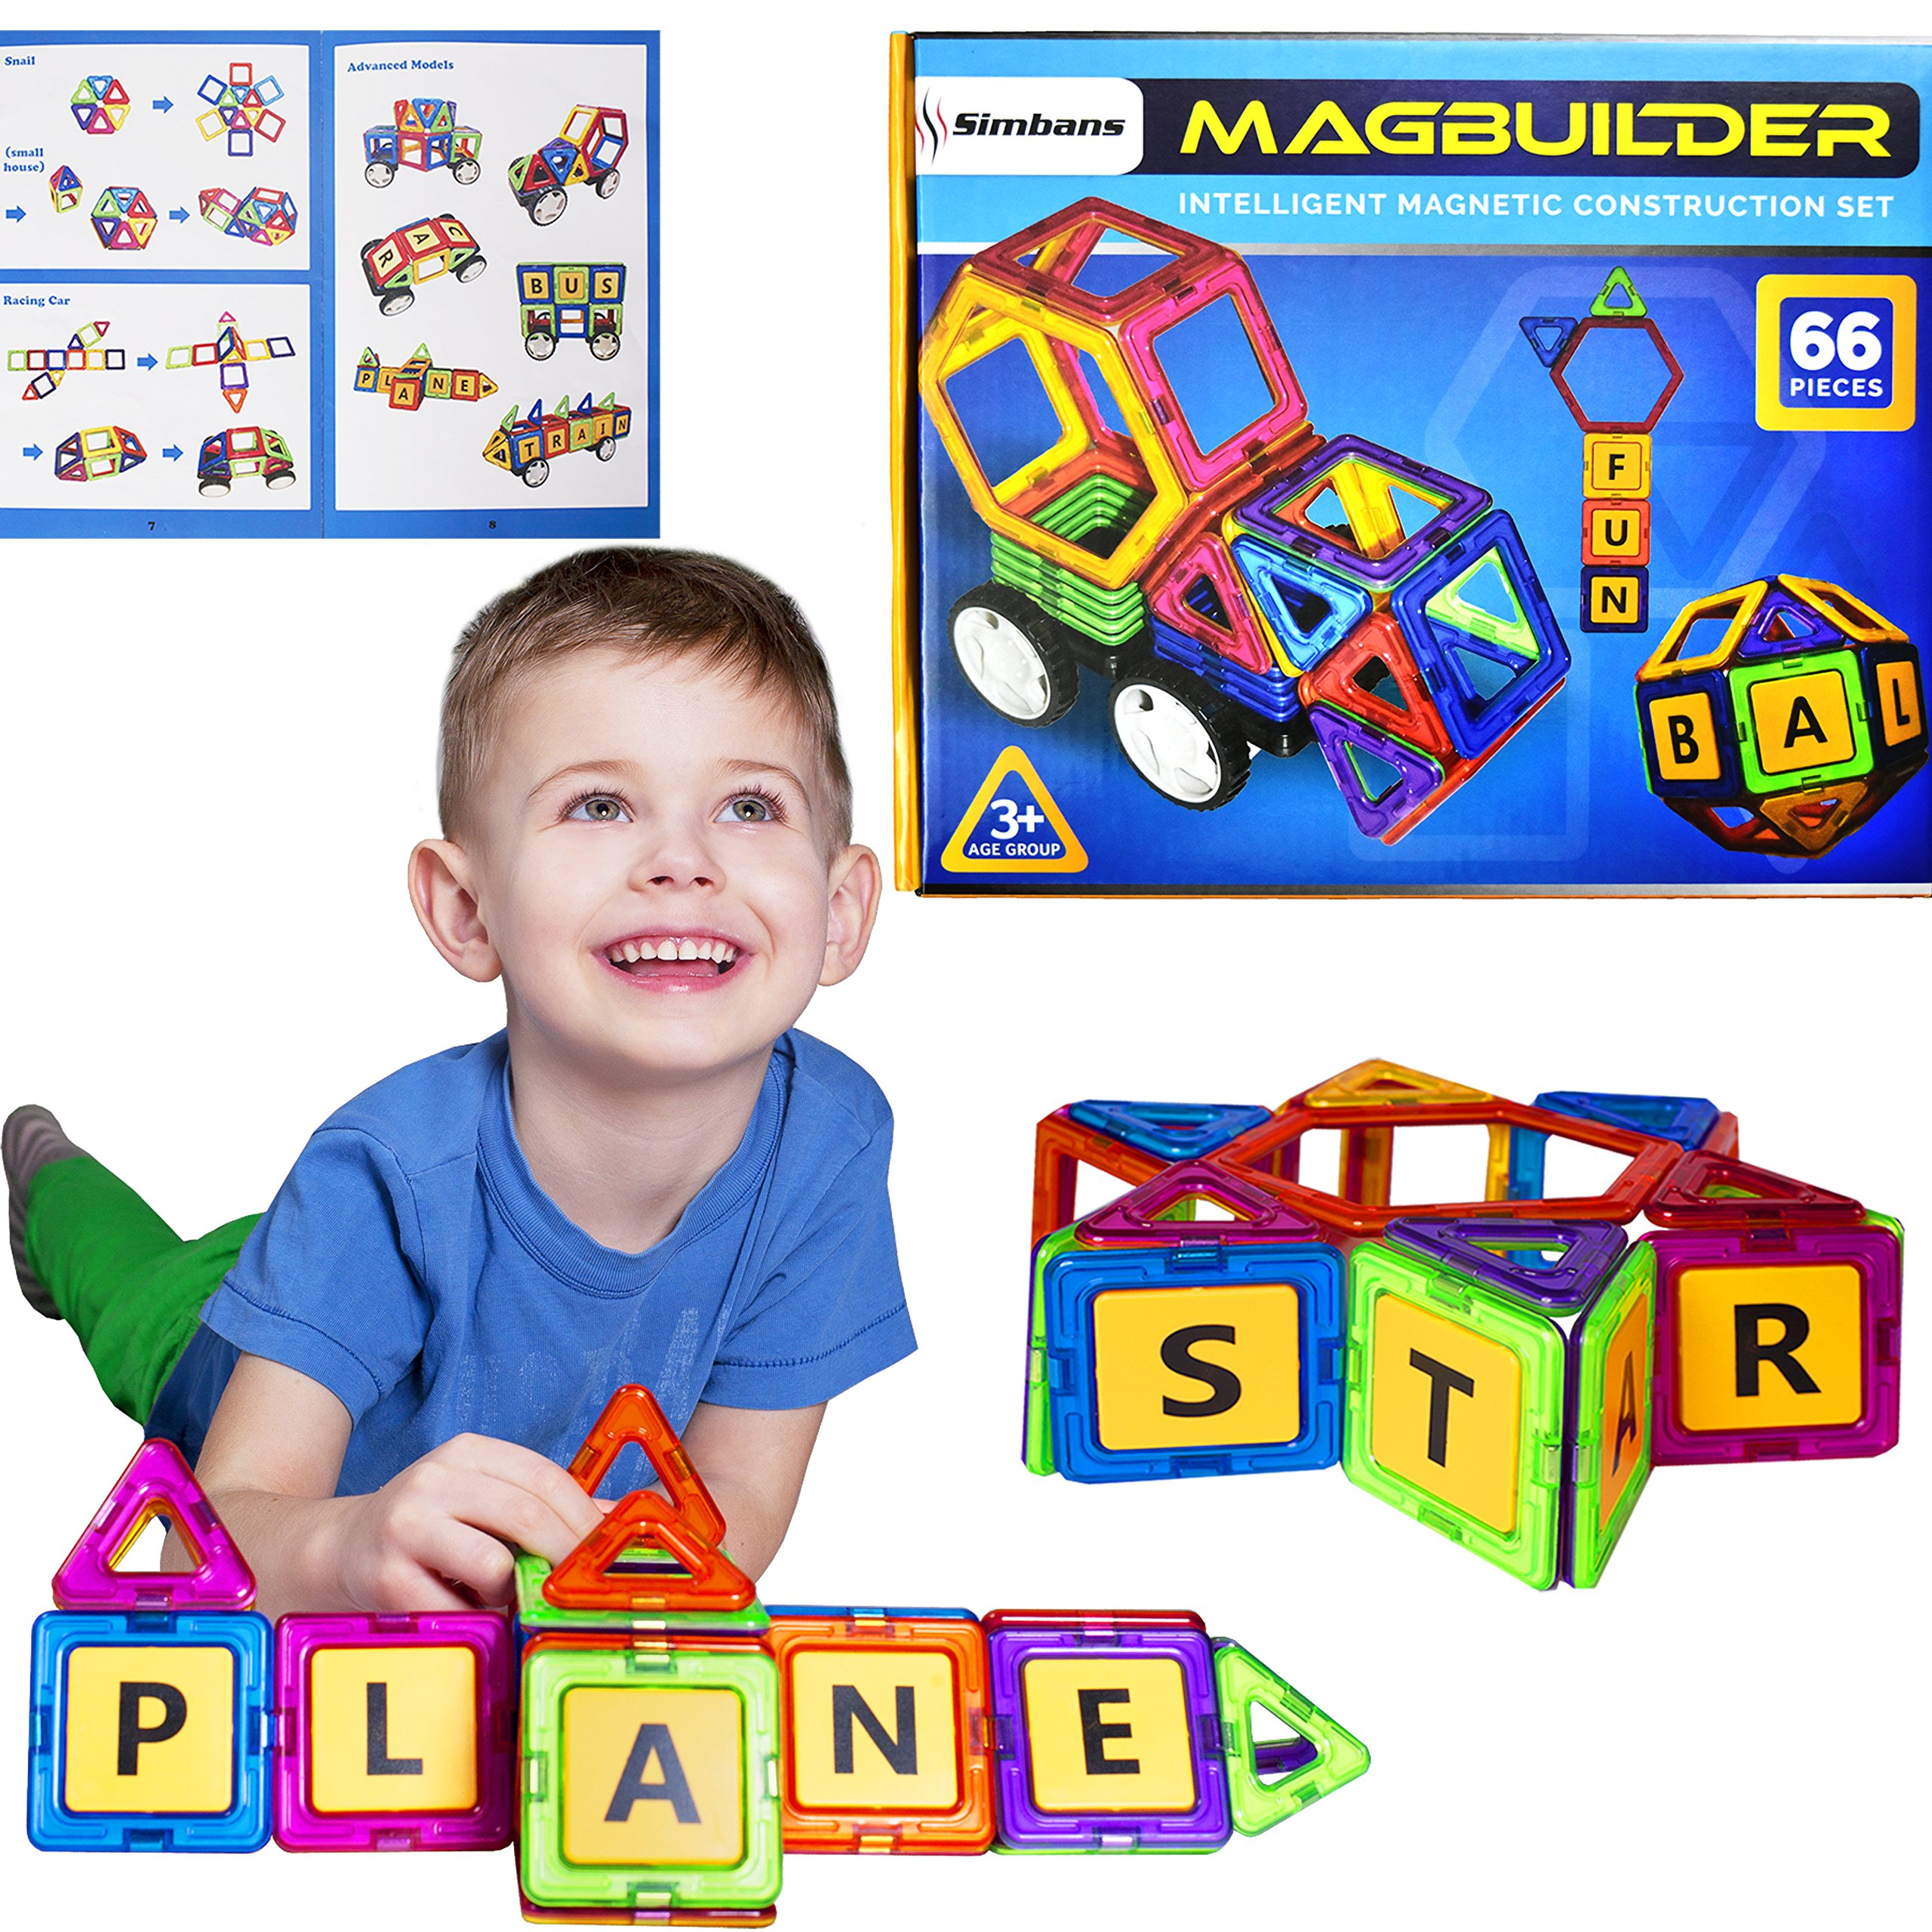 Best Gifts for 4 Year Old Boy Play: Amazon.com